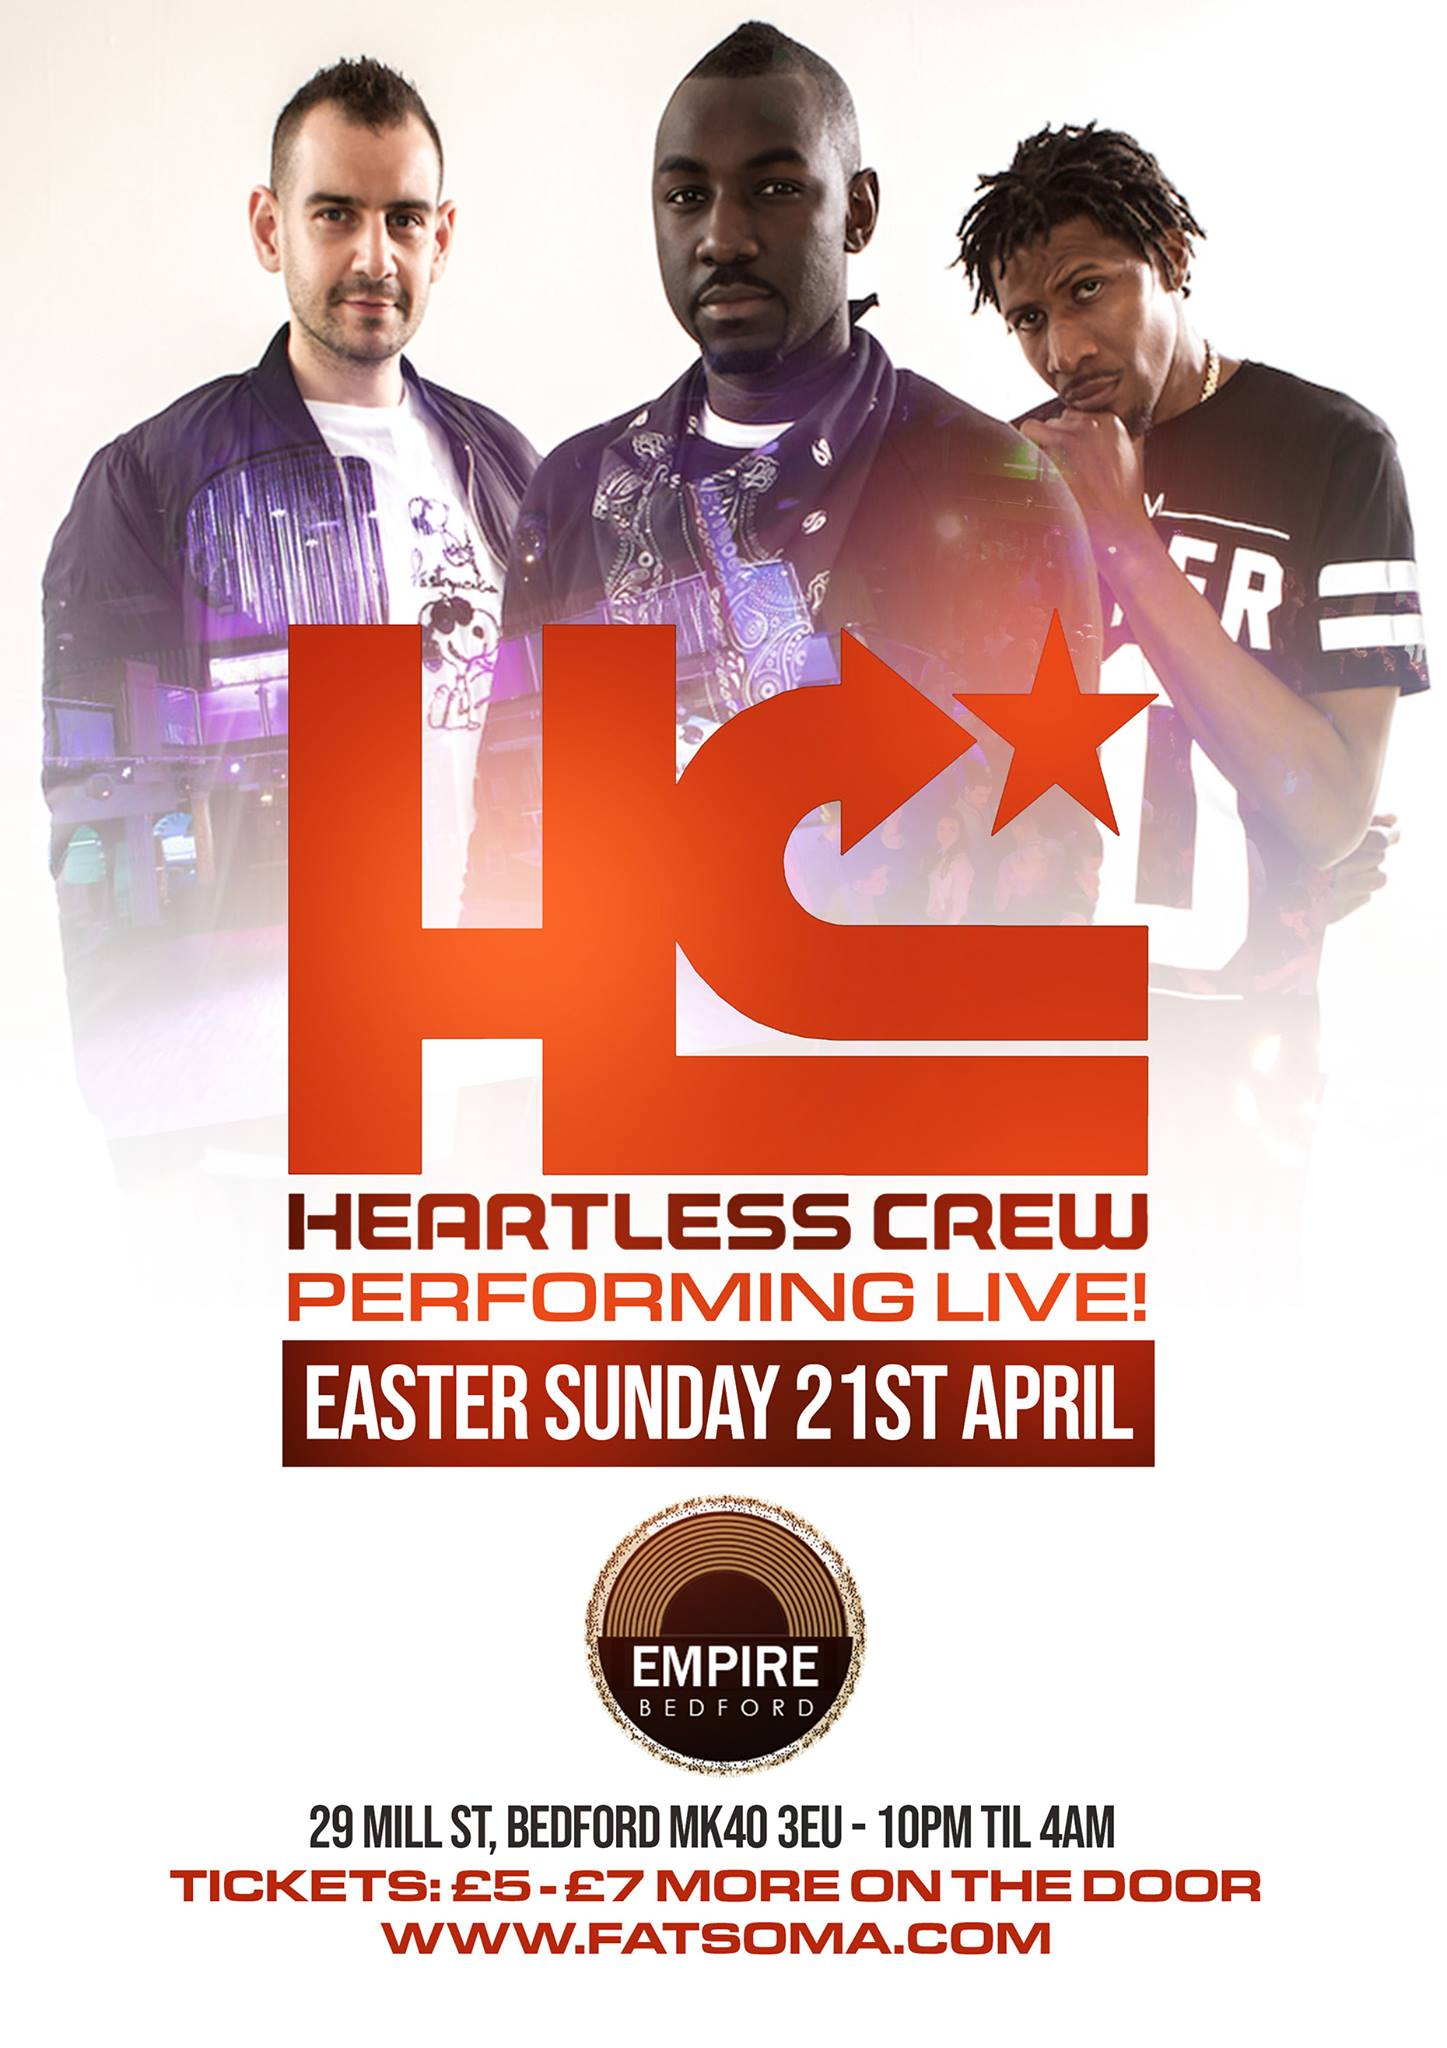 Heartless Crew Live at Empire